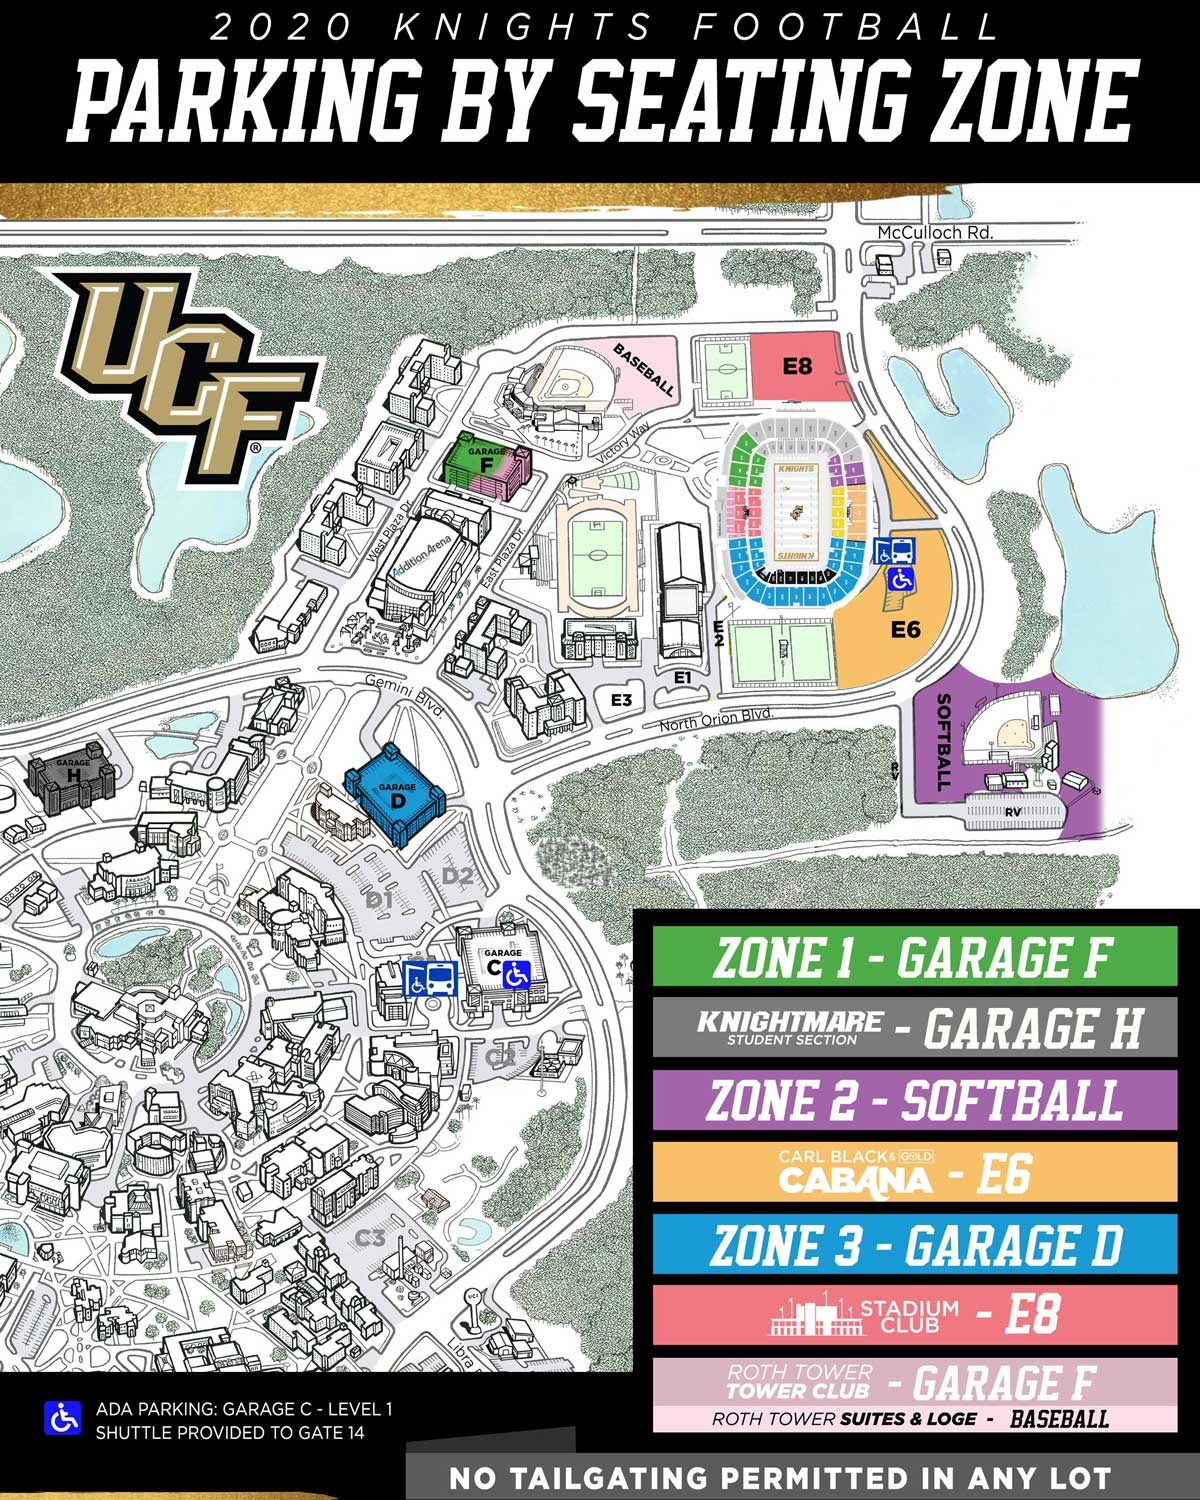 parking map for 2020 football season